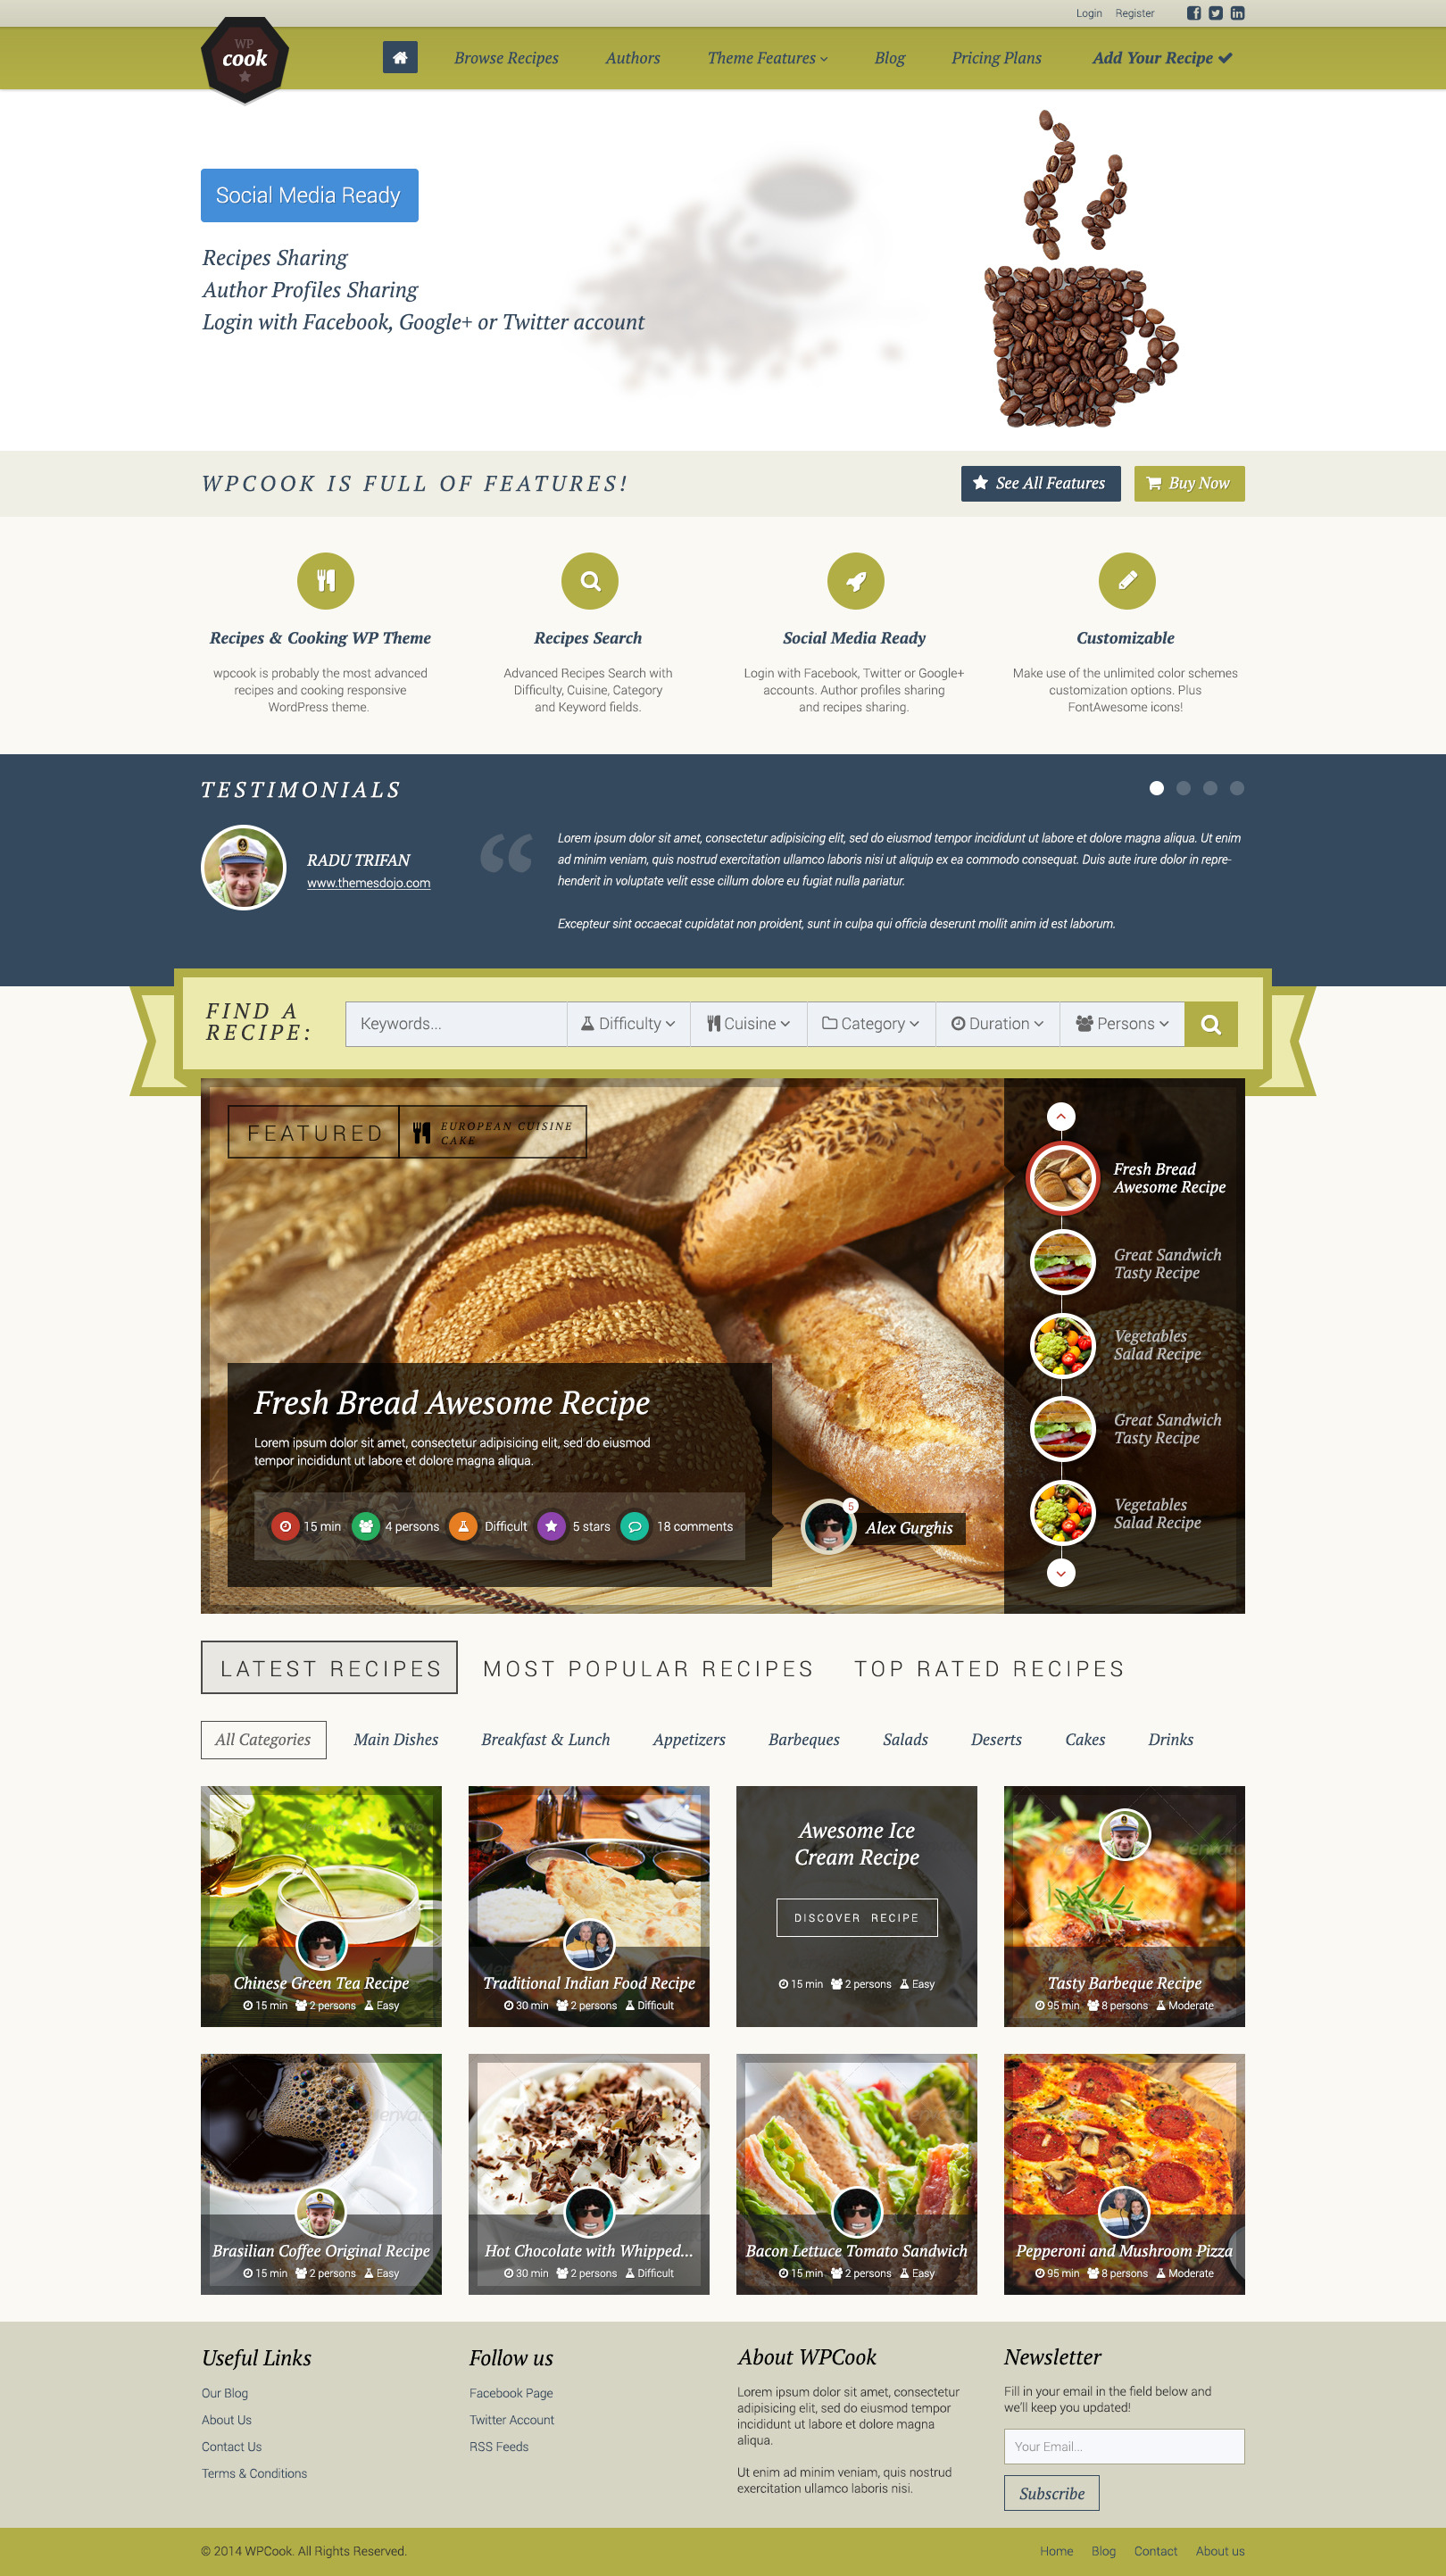 Psdcook recipes cooking psd design by themes dojo themeforest previewswpcook frontpageg previewswpcook recipeg previewswpcook registerg previewswpcook search resultsg previewswpcook shopg forumfinder